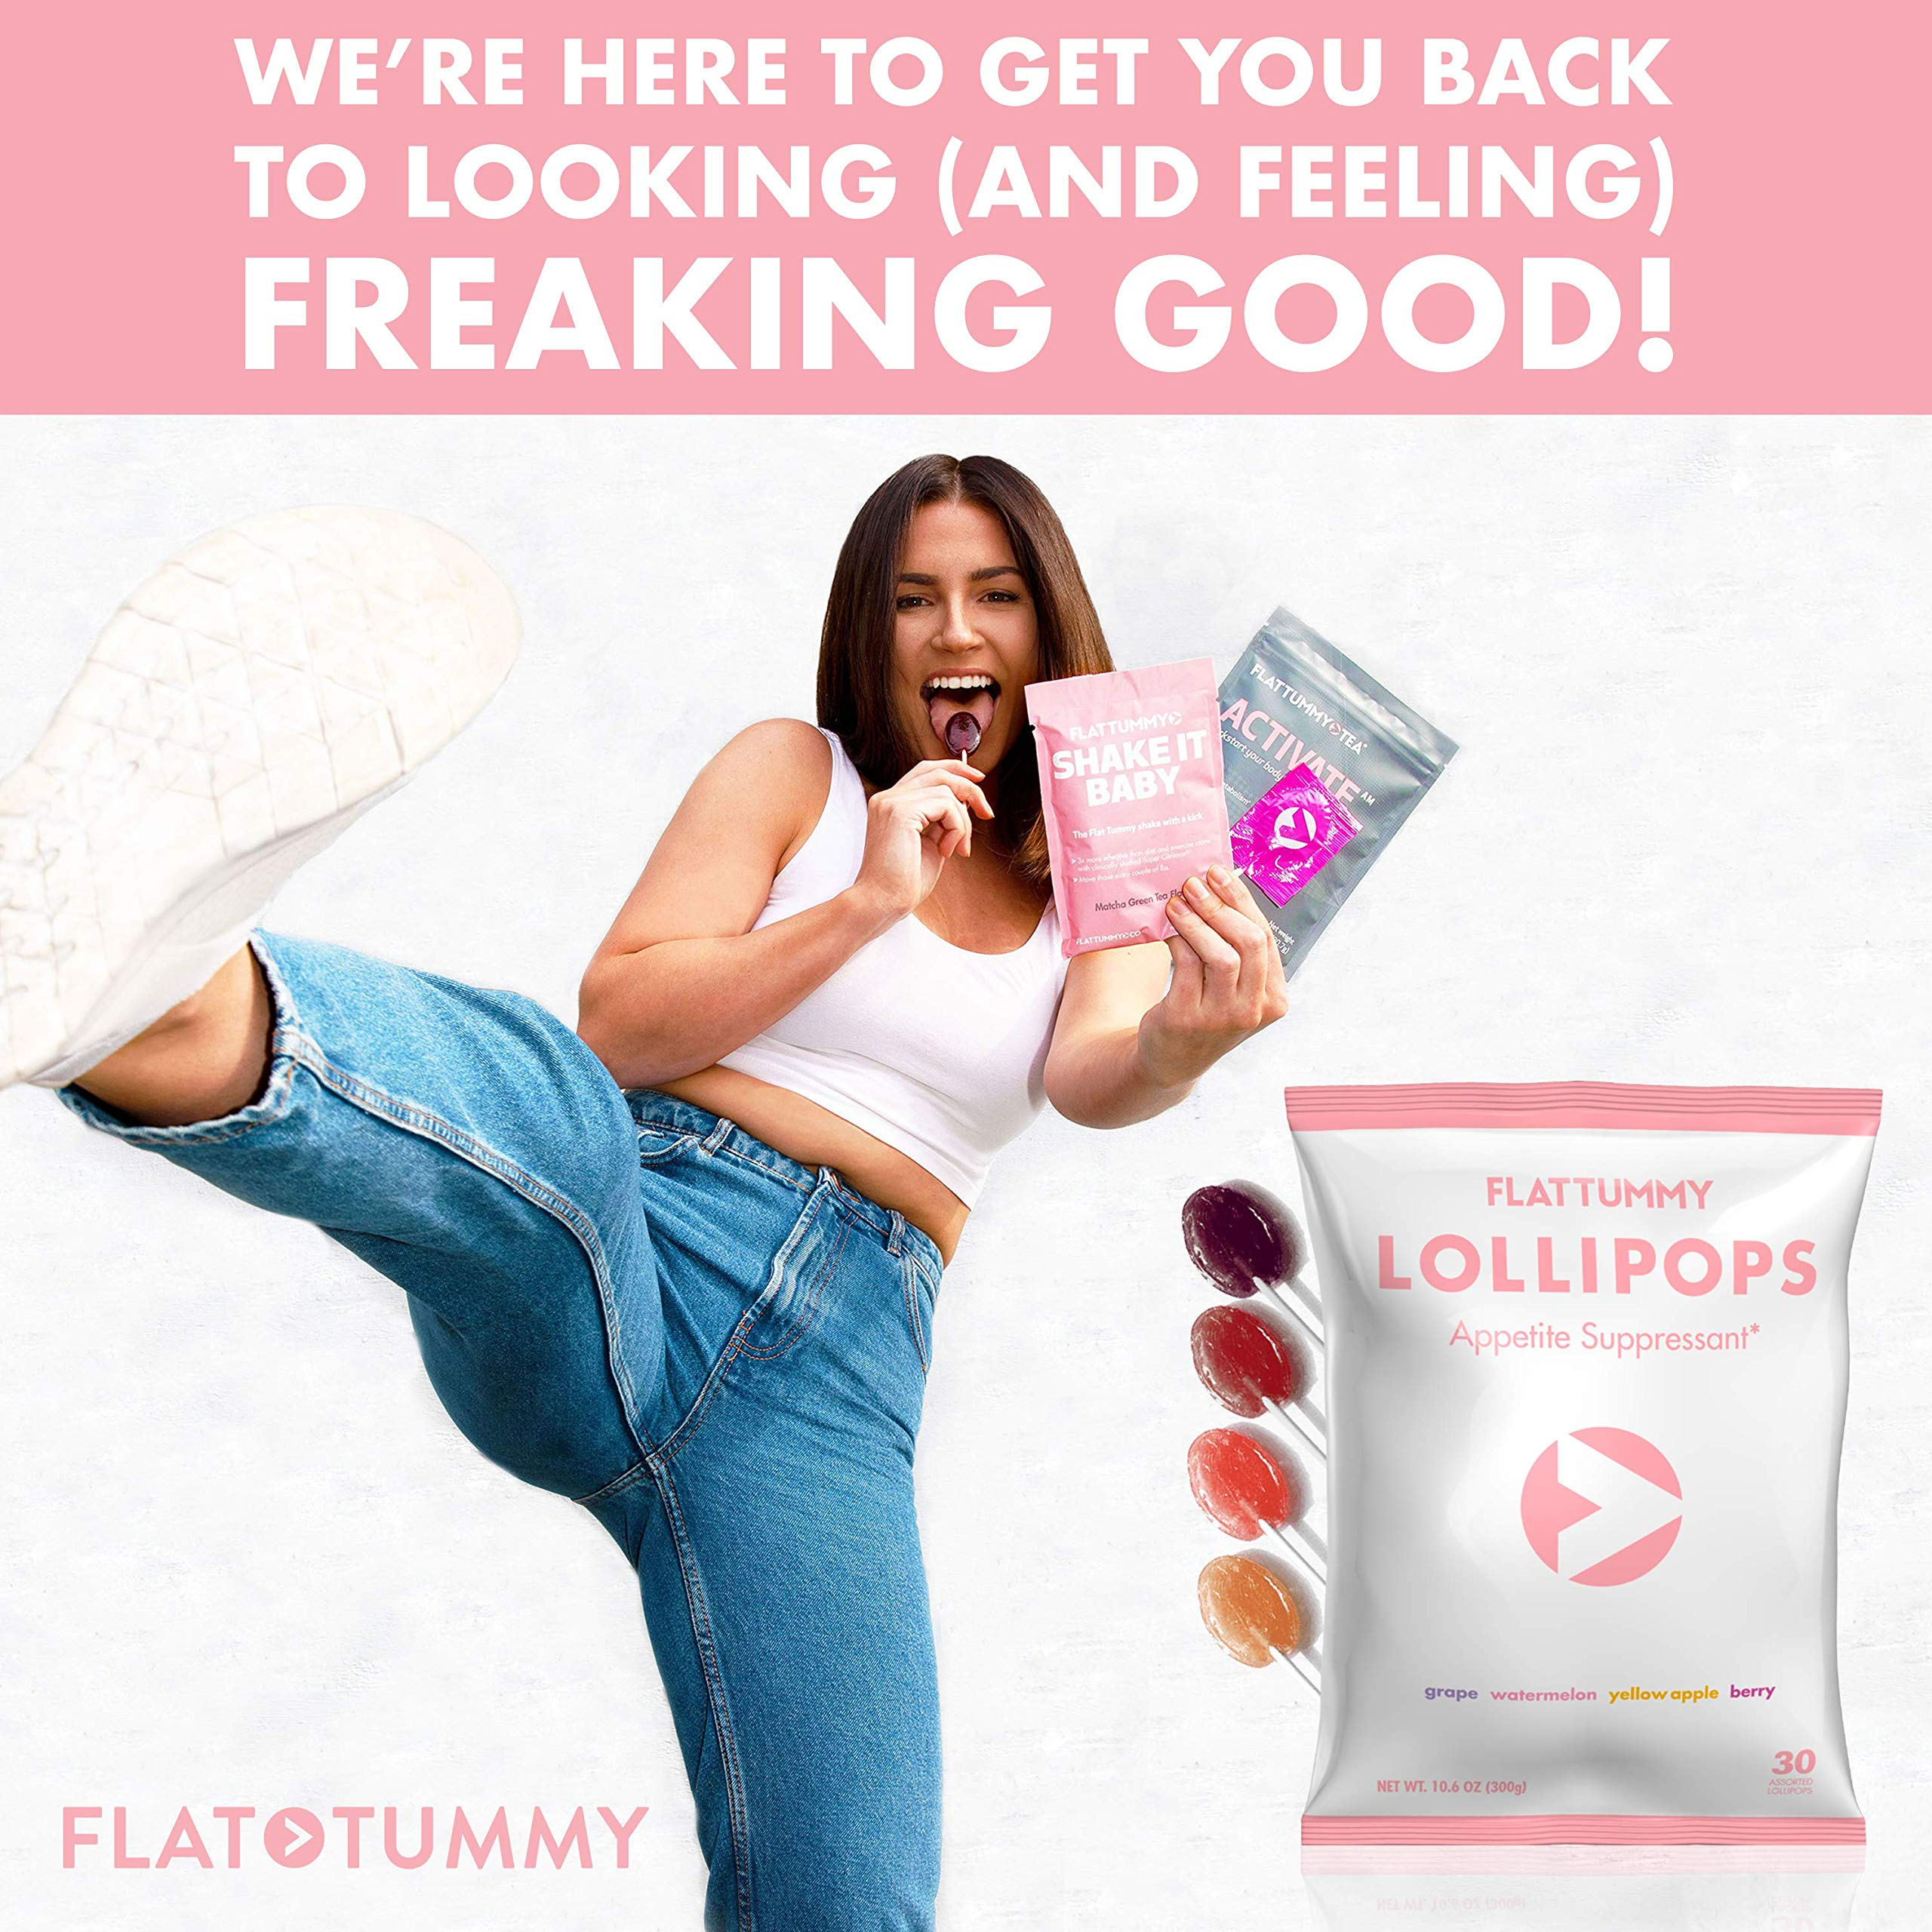 Flat Tummy Appetite Suppressant Lollipops | The Best All Natural Suckers, 4 Great Flavors + Apple, Grape, Watermelon & Berry + Suppress Cravings, The Perfect Low Calorie Diet Candy by Flat Tummy Co. (Image #7)